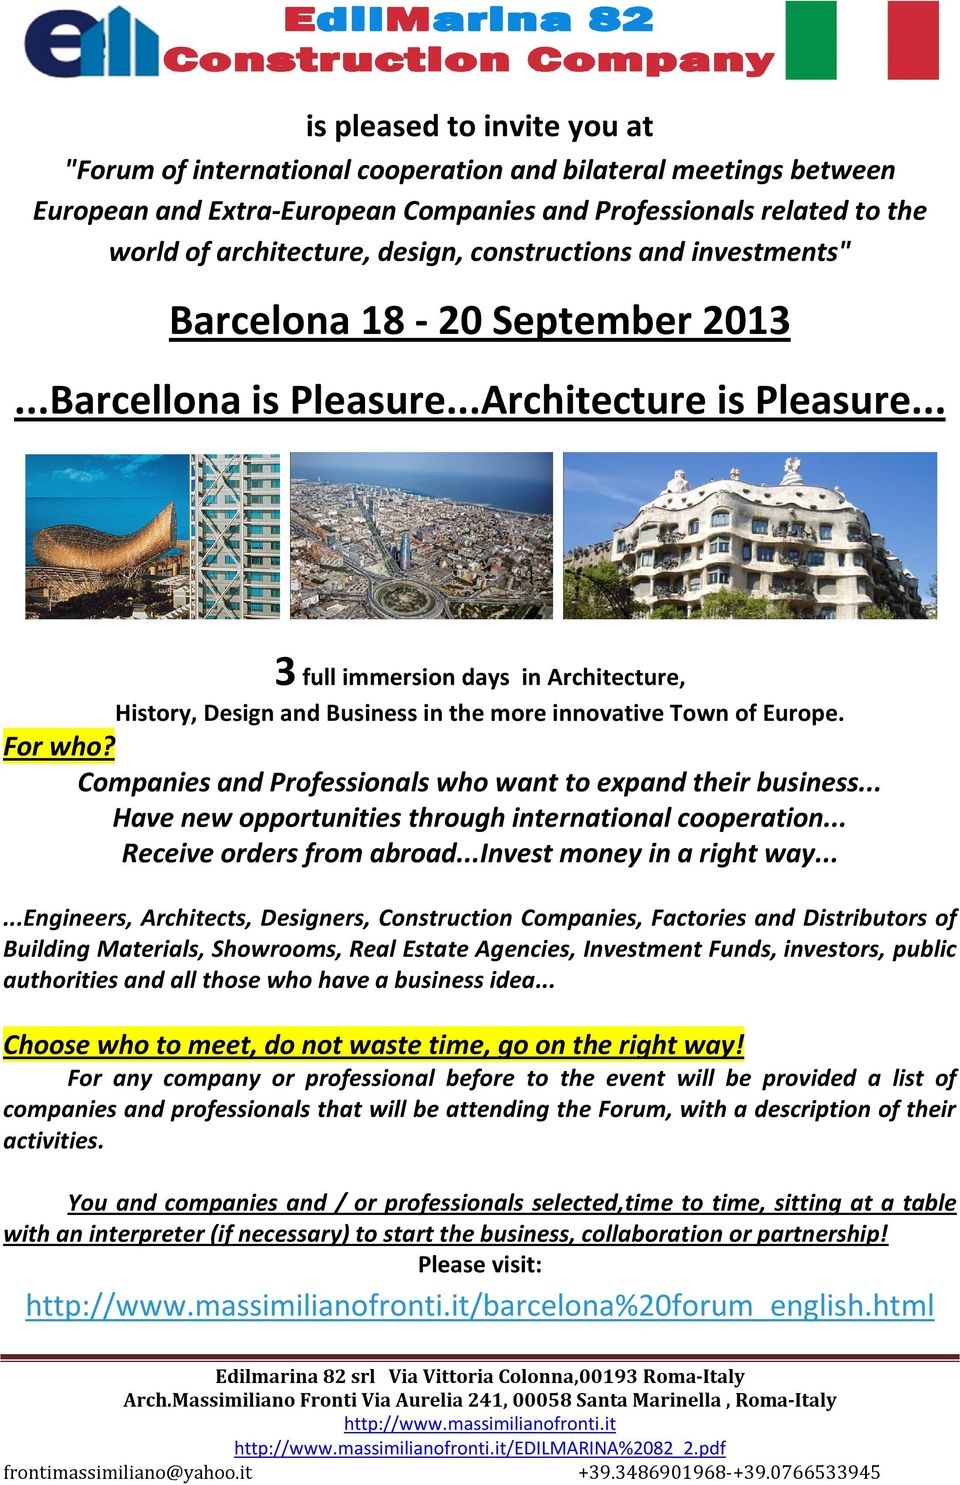 .. 3 full immersion days in Architecture, History, Design and Business in the more innovative Town of Europe. For who? Companies and Professionals who want to expand their business.